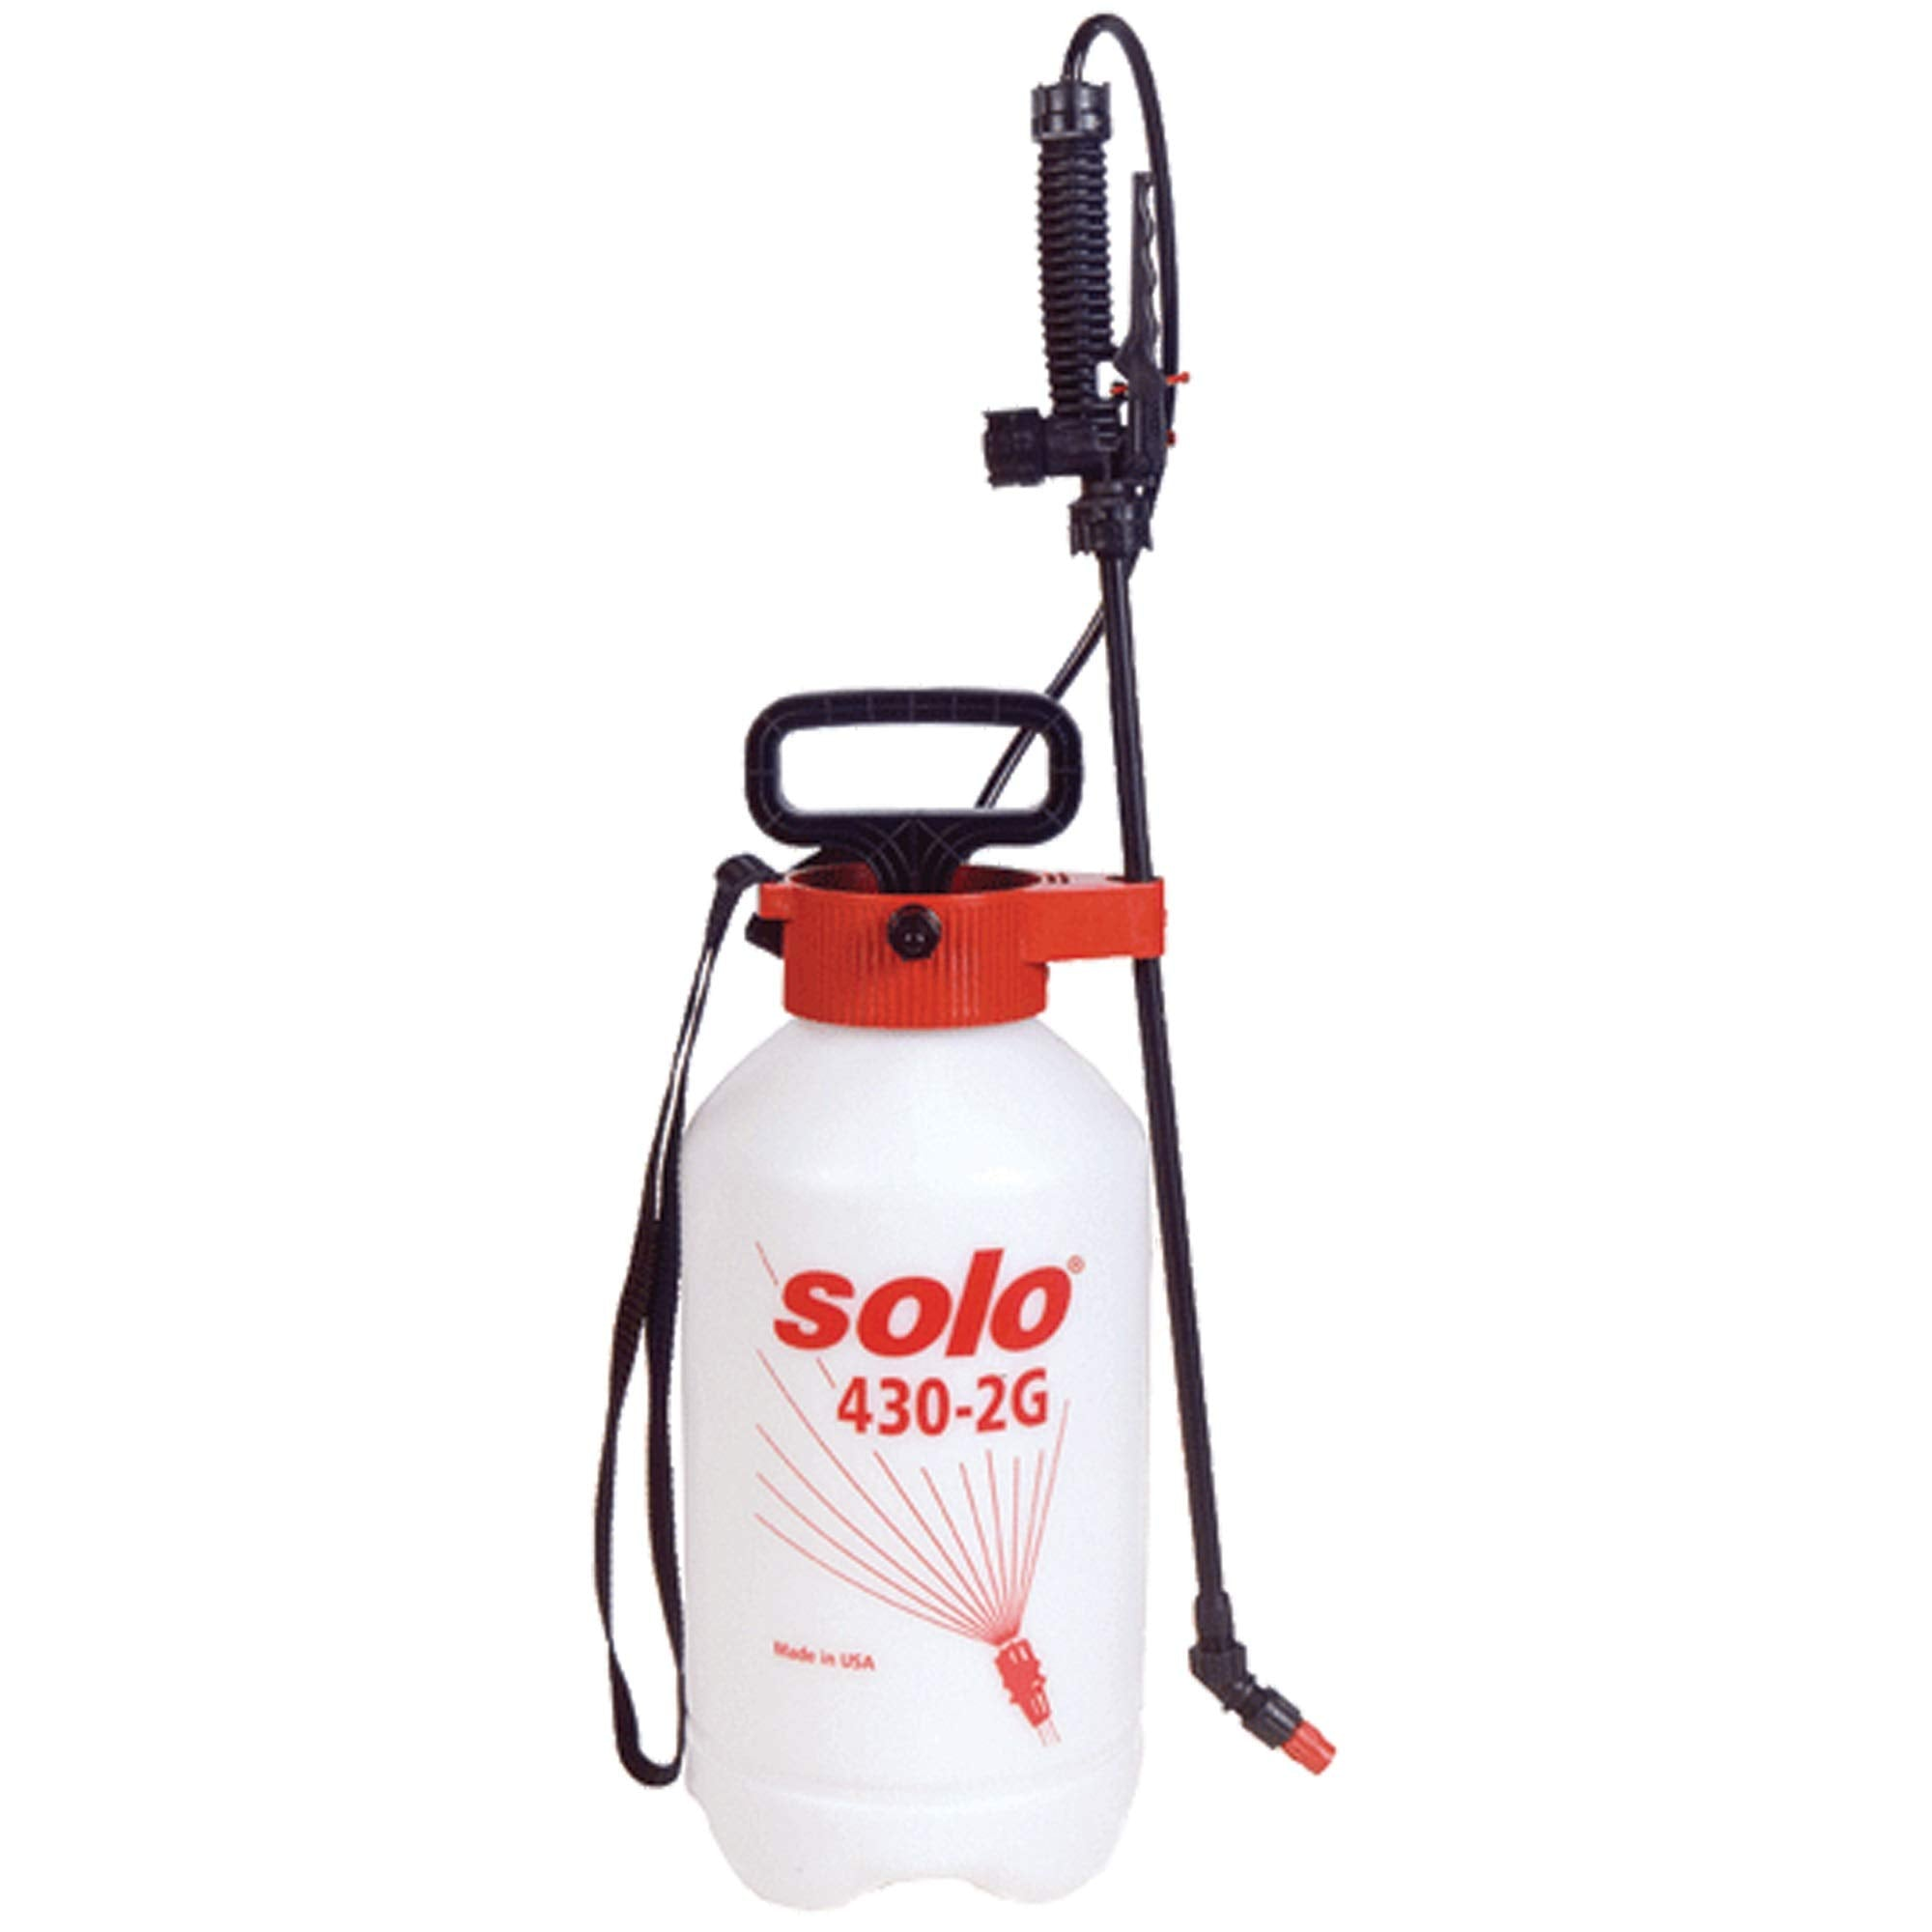 Portable High Pressure Handheld Garden Pump Sprayer